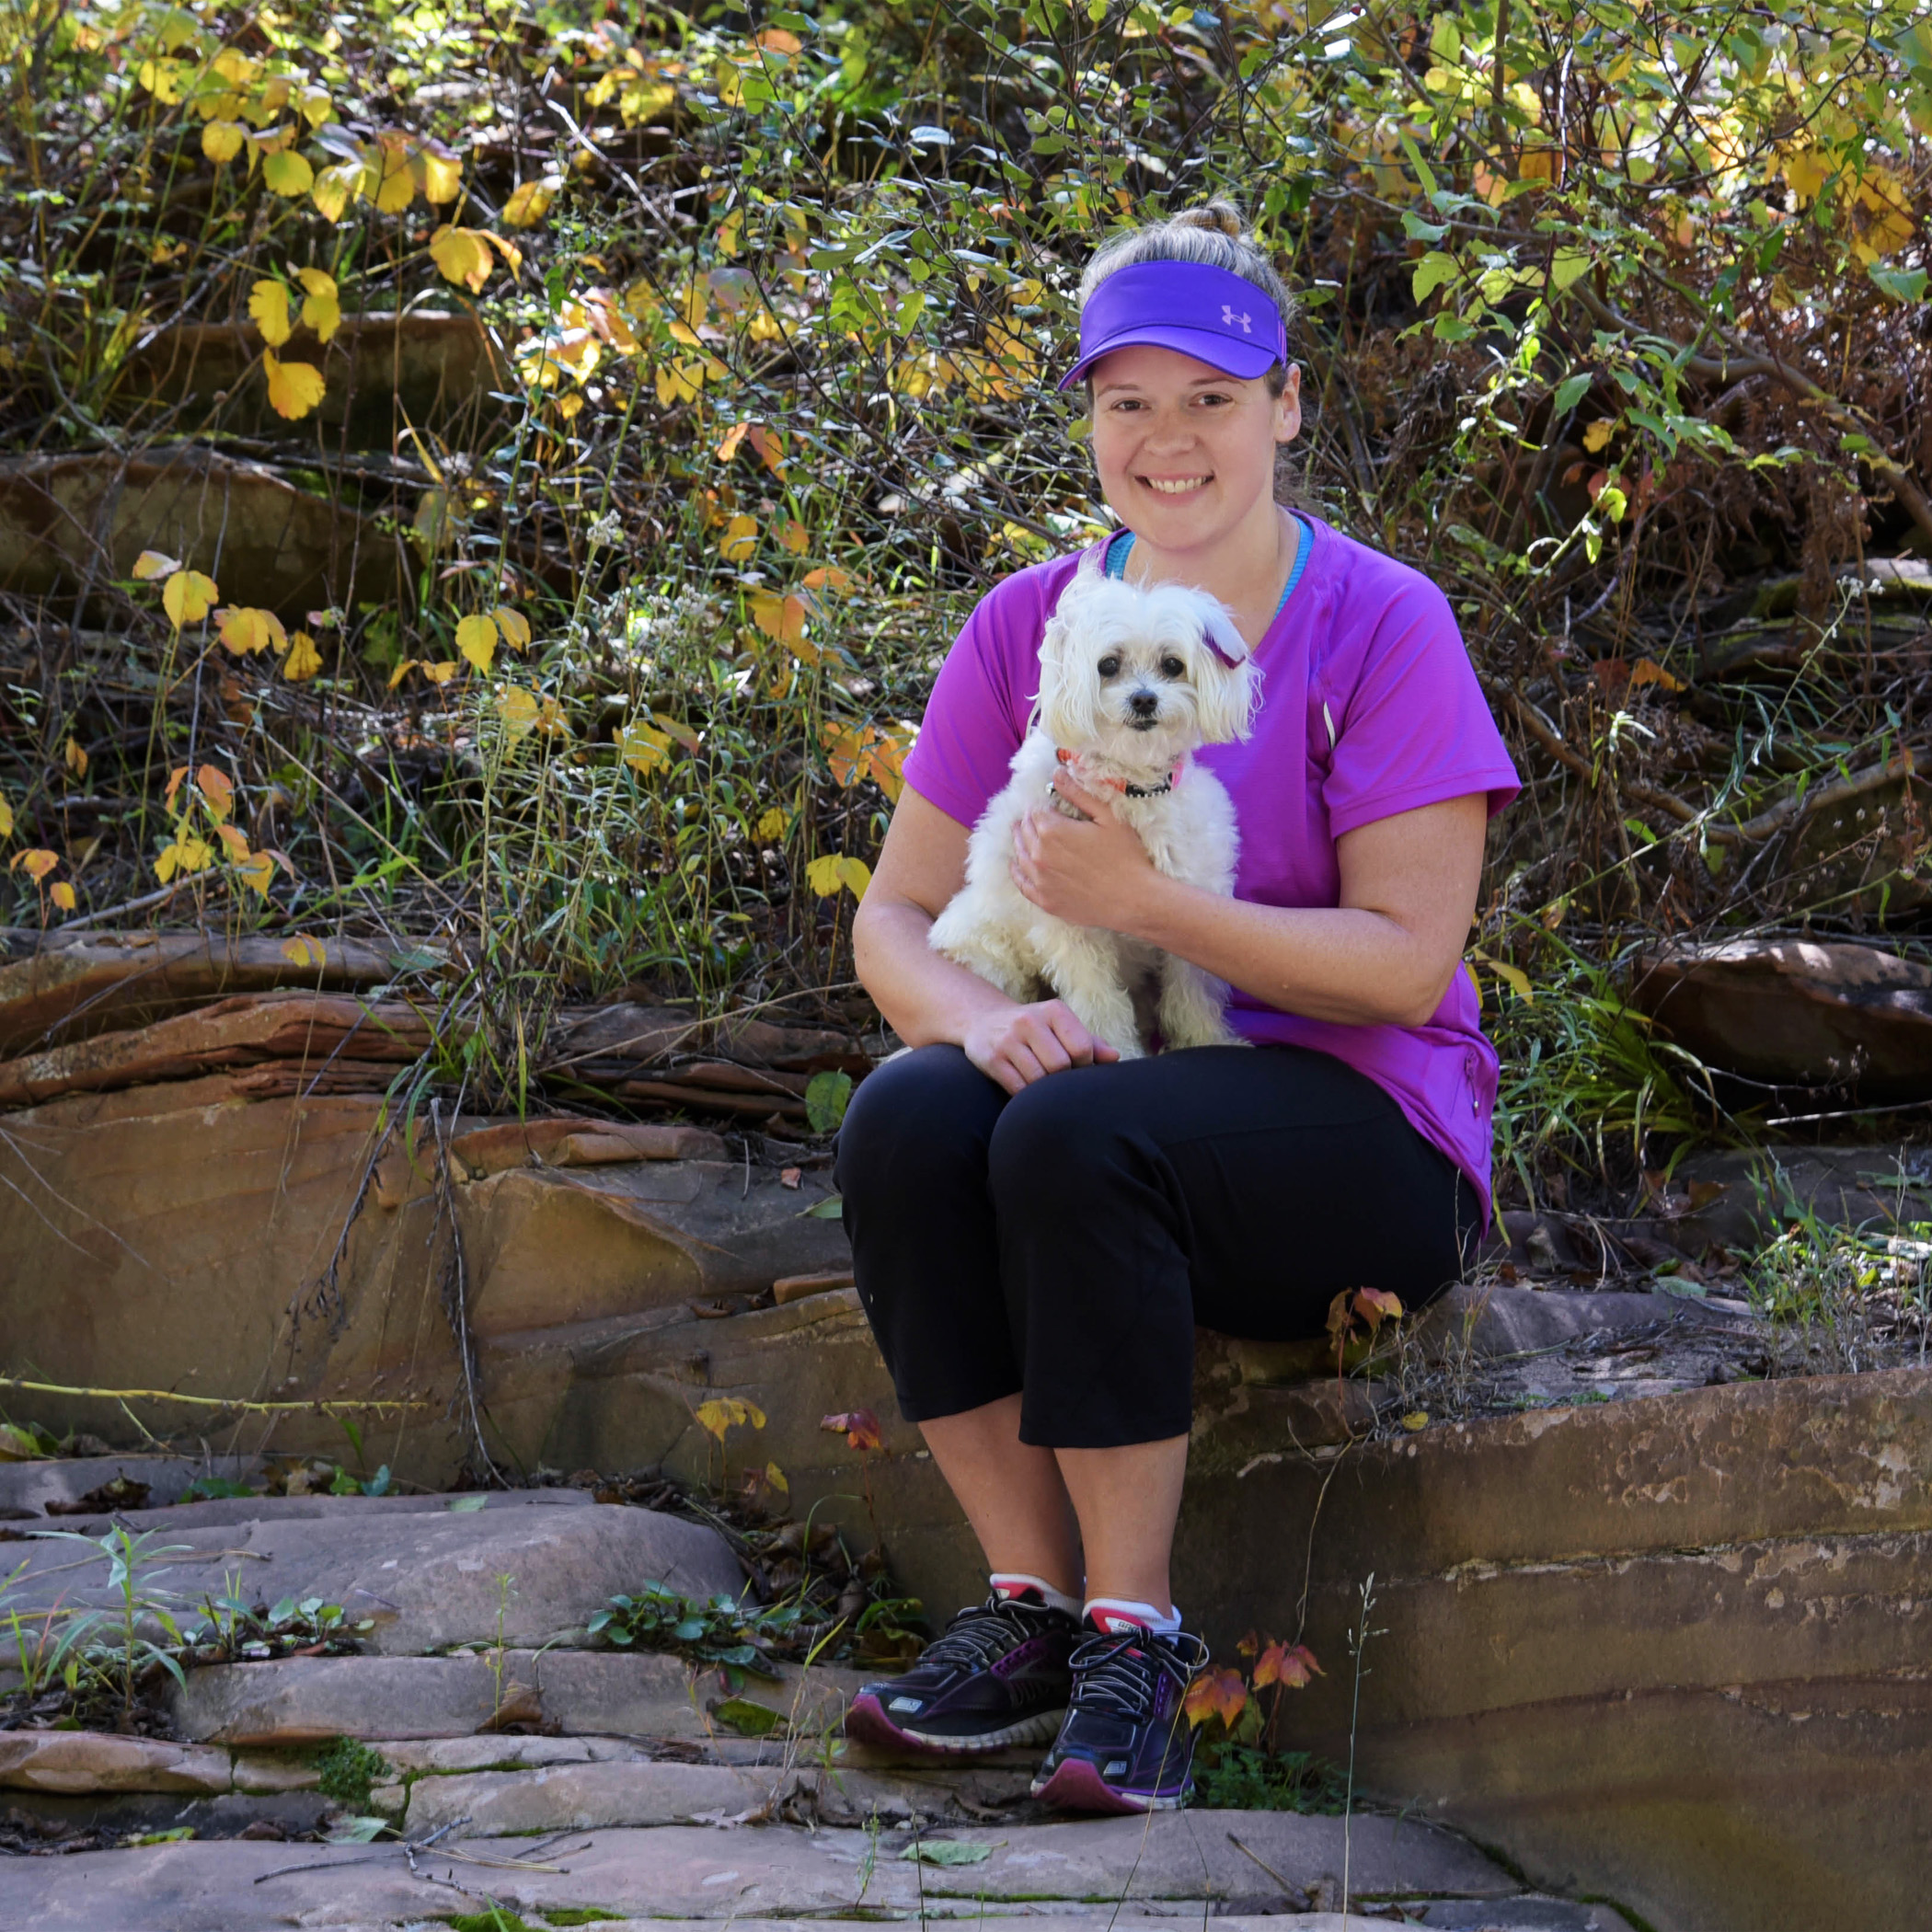 My BFF was an awesome hiker! She carried me over at least 8 different water hazards…and we both stayed dry!!